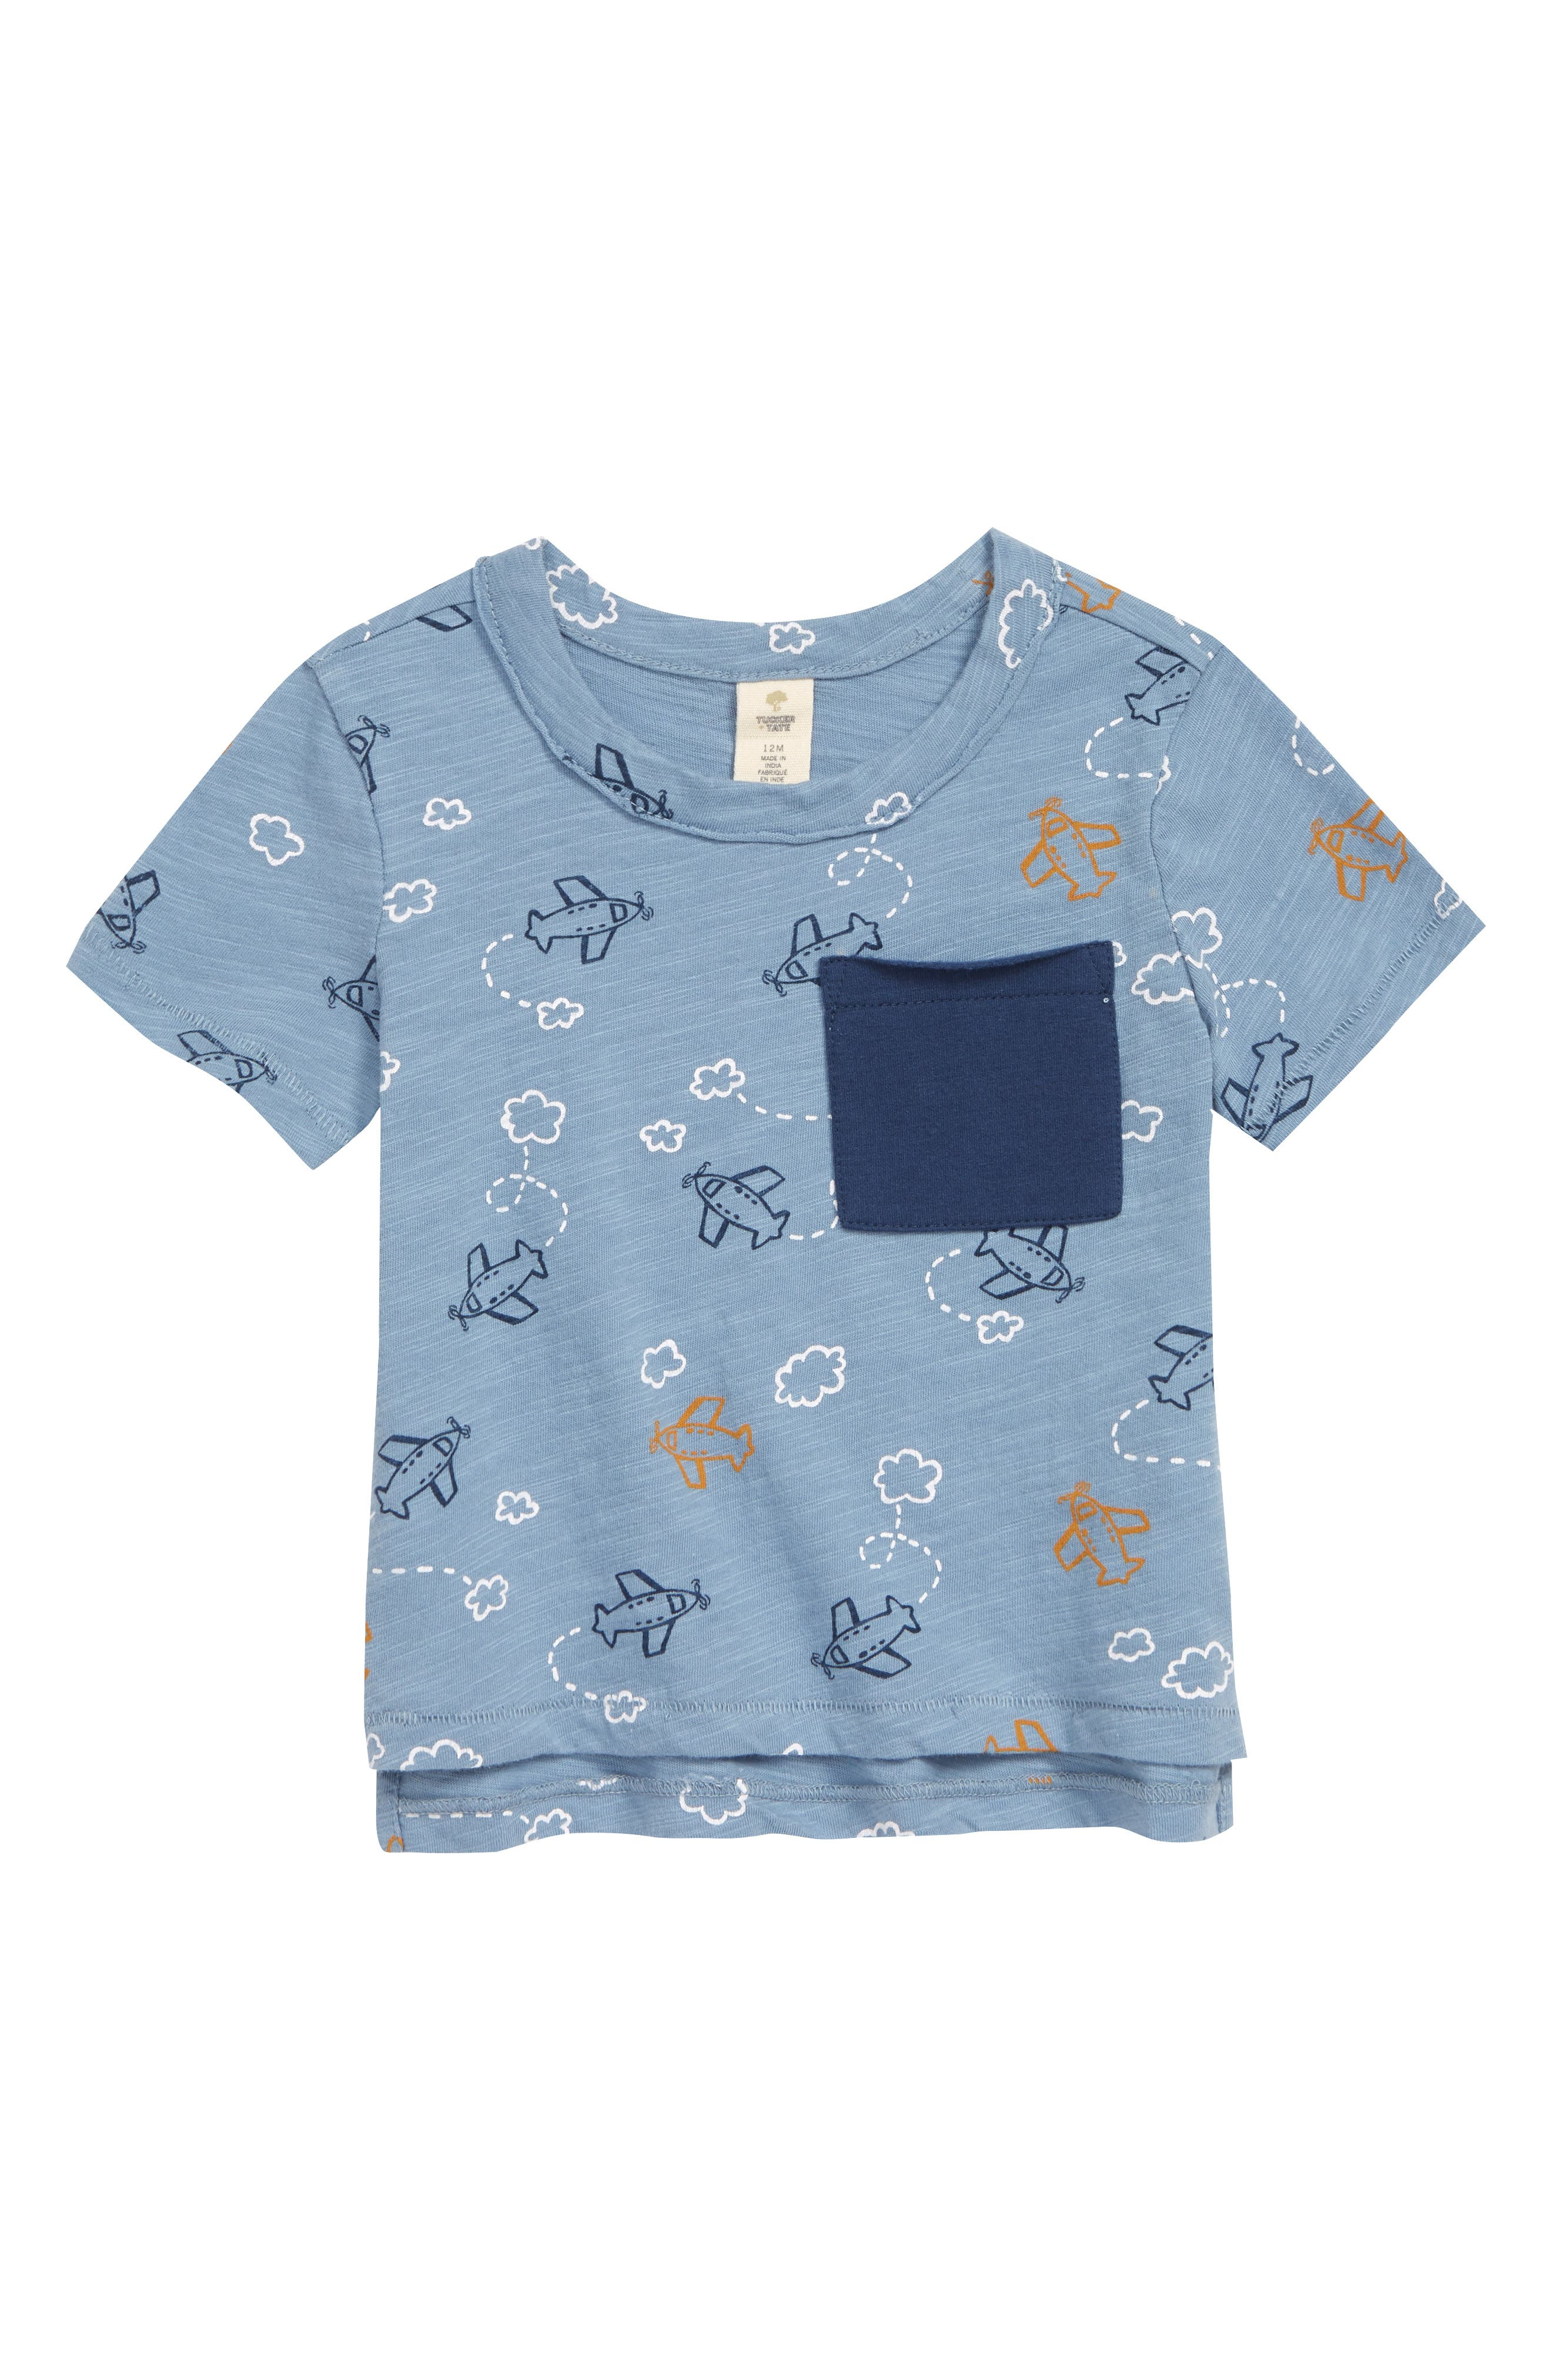 Airplanes pull off loop-the-loop maneuvers among the clouds on this fun little tee with a cute contrasting patch pocket. Style Name: Tucker + Tate Airplane Graphic Tee (Baby). Style Number: 6011232. Available in stores.